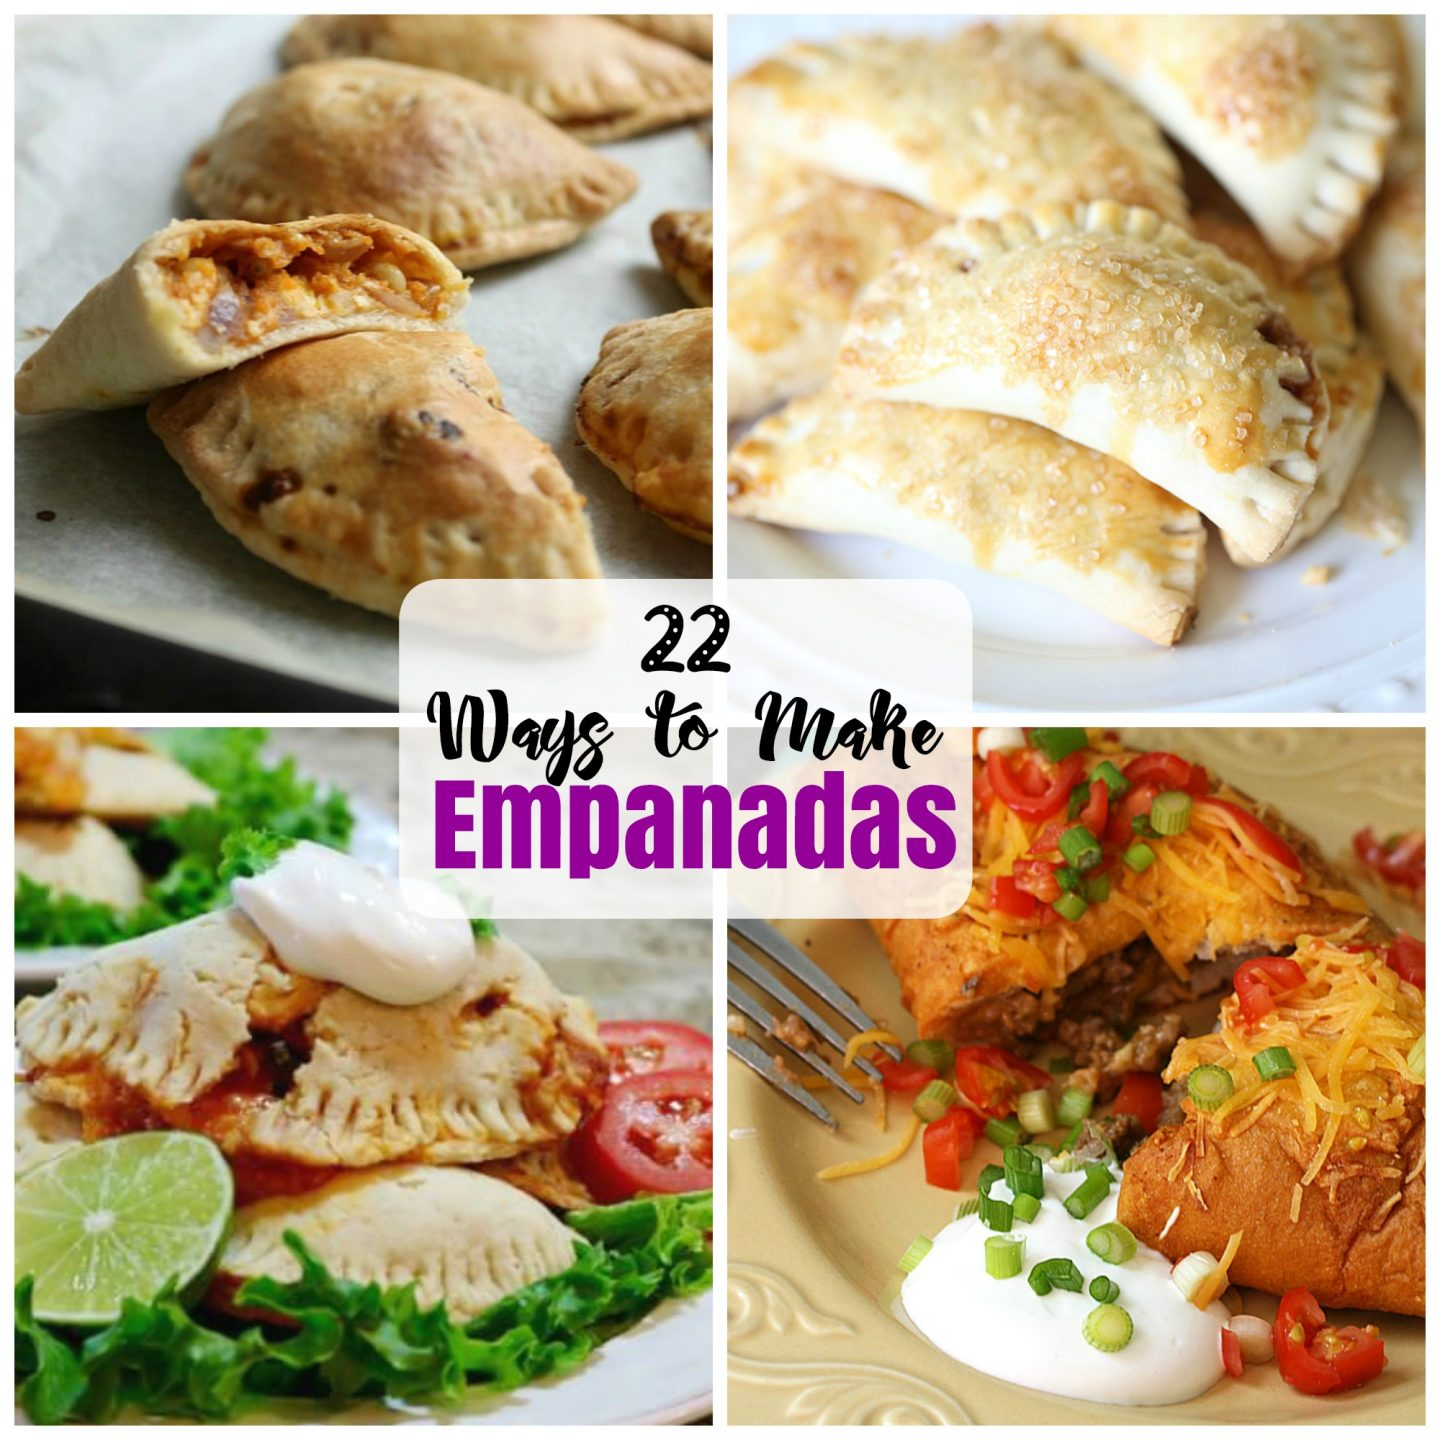 22 recipes for empanadas